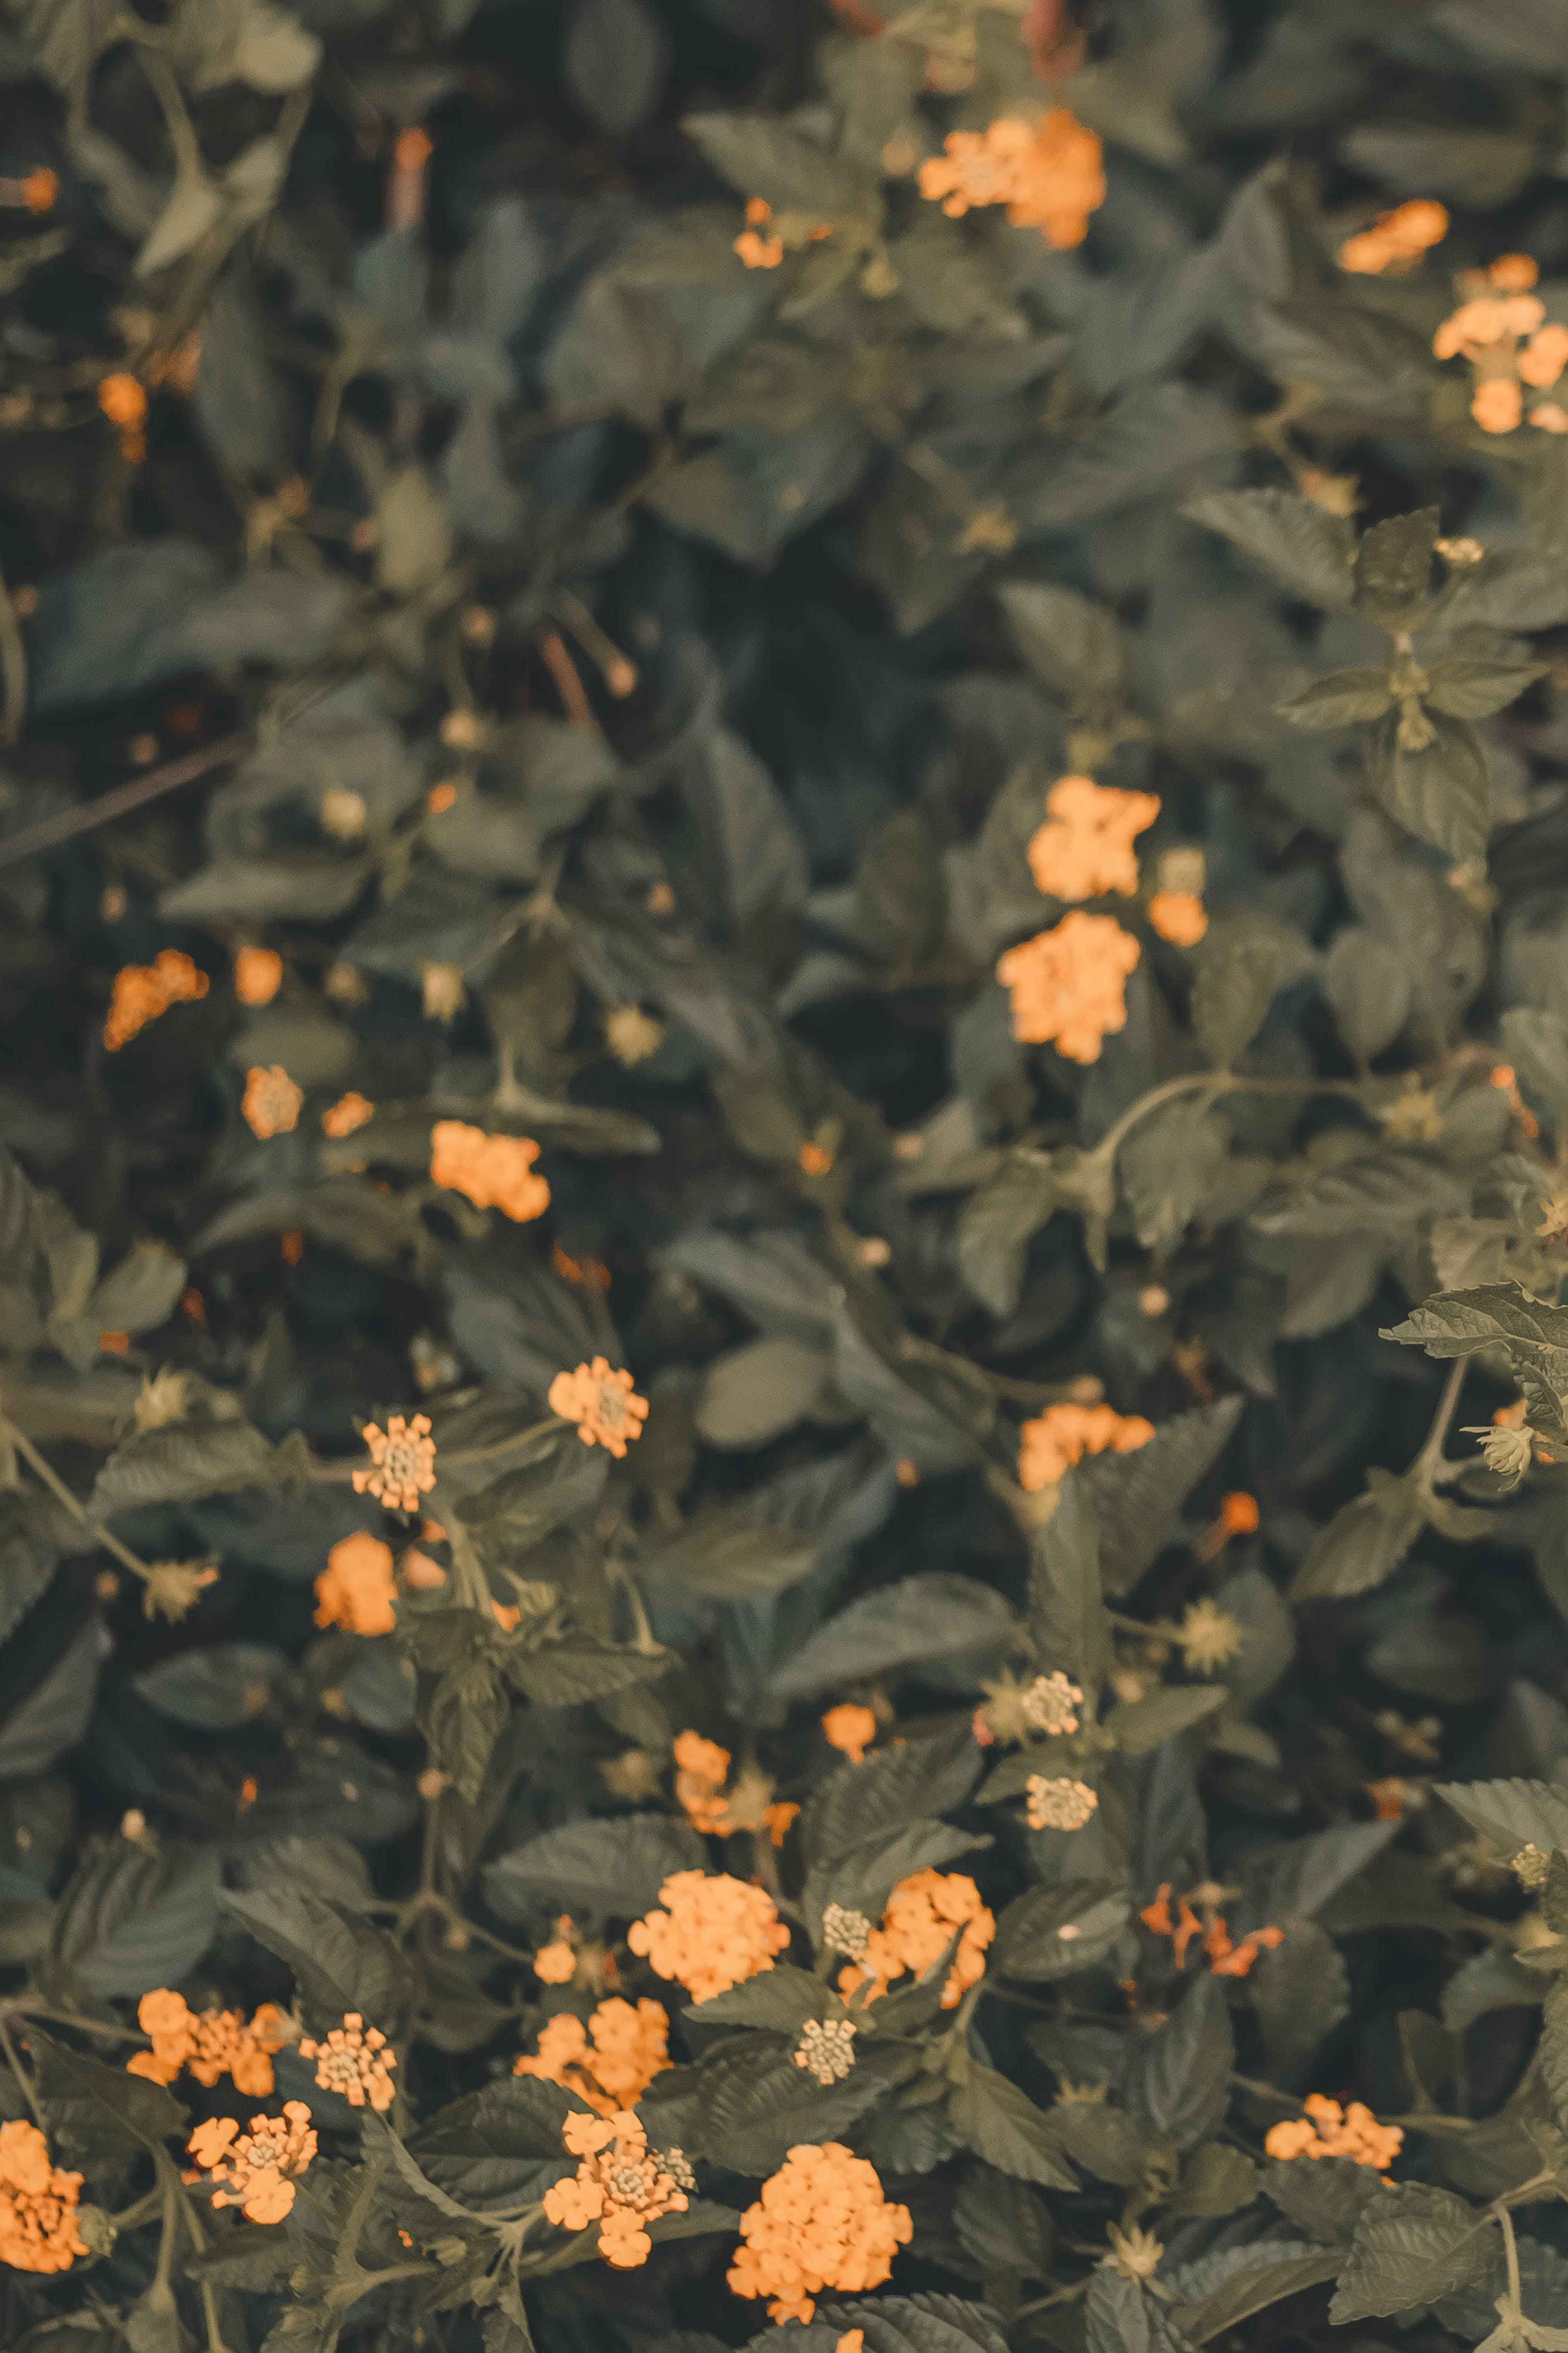 Free stock photo of bloom, blooms, blossom flora, environment